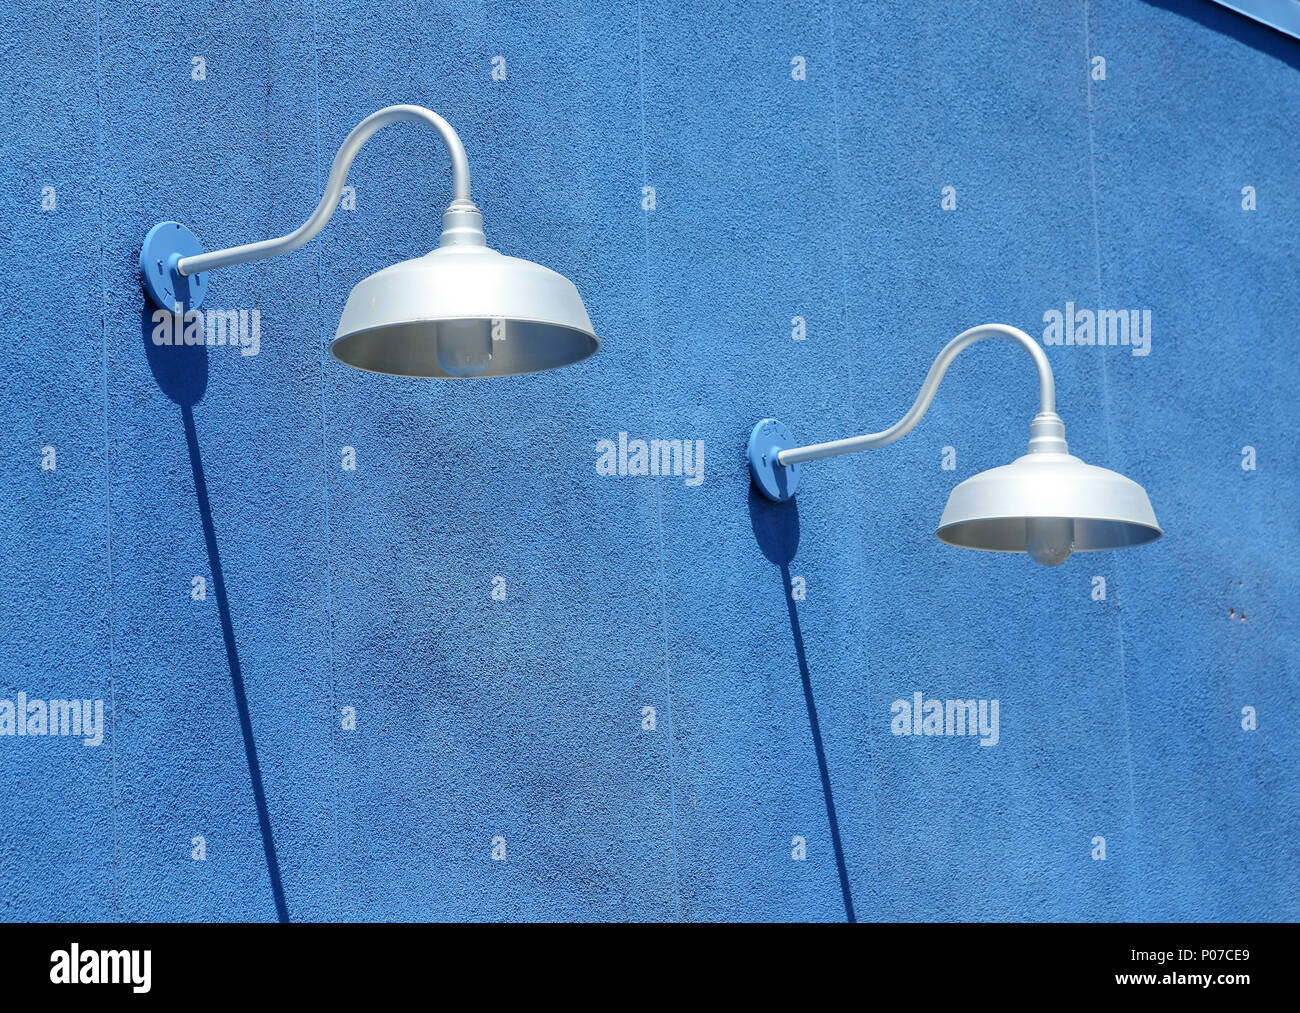 Blue stucco wall with light fixtures and shadows in daytime stock image